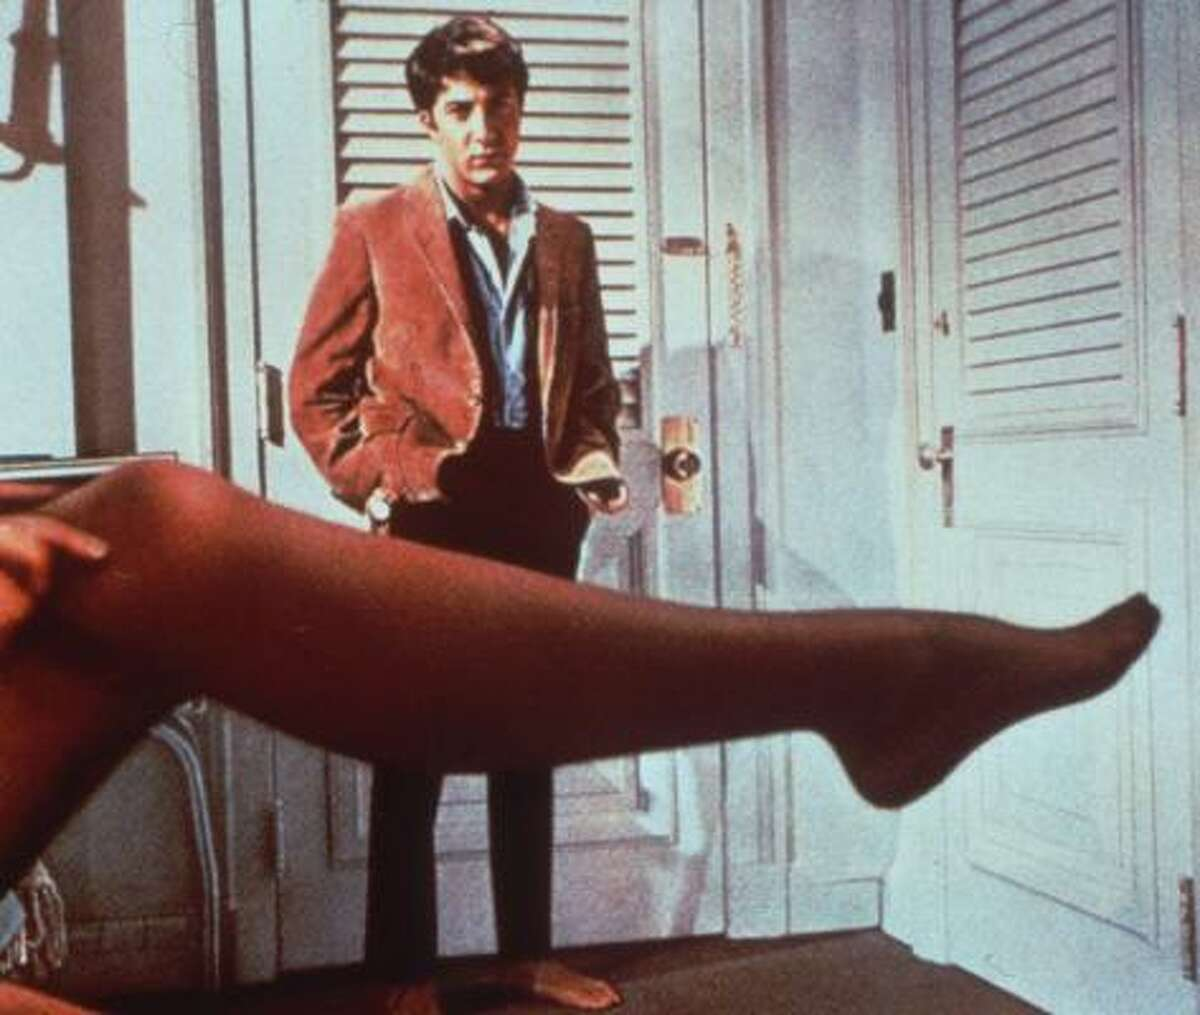 The Graduate: Sure we're glad Benjamin finally gets together with Elaine. But did she have to leave poor Carl at the altar?